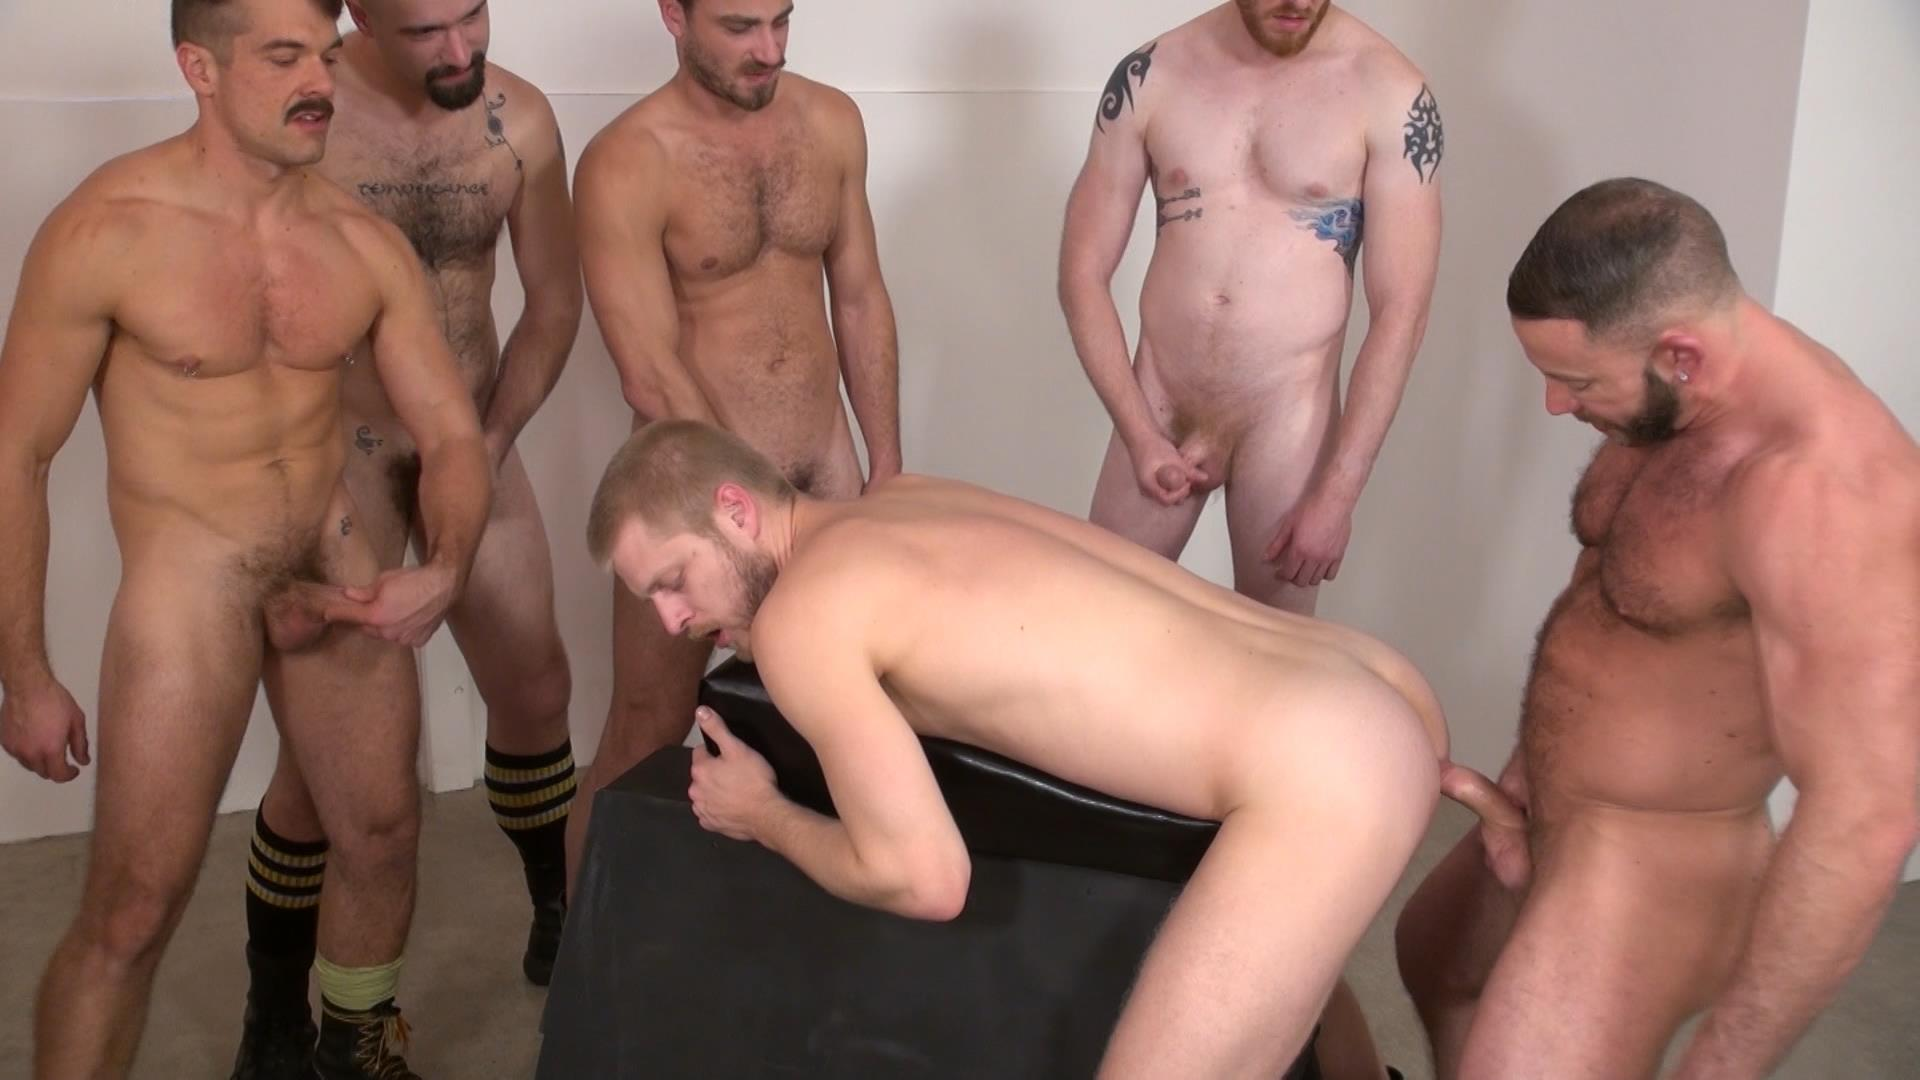 Gay Orgy Porn and Gay Sex Orgy Videos   YouPornGay